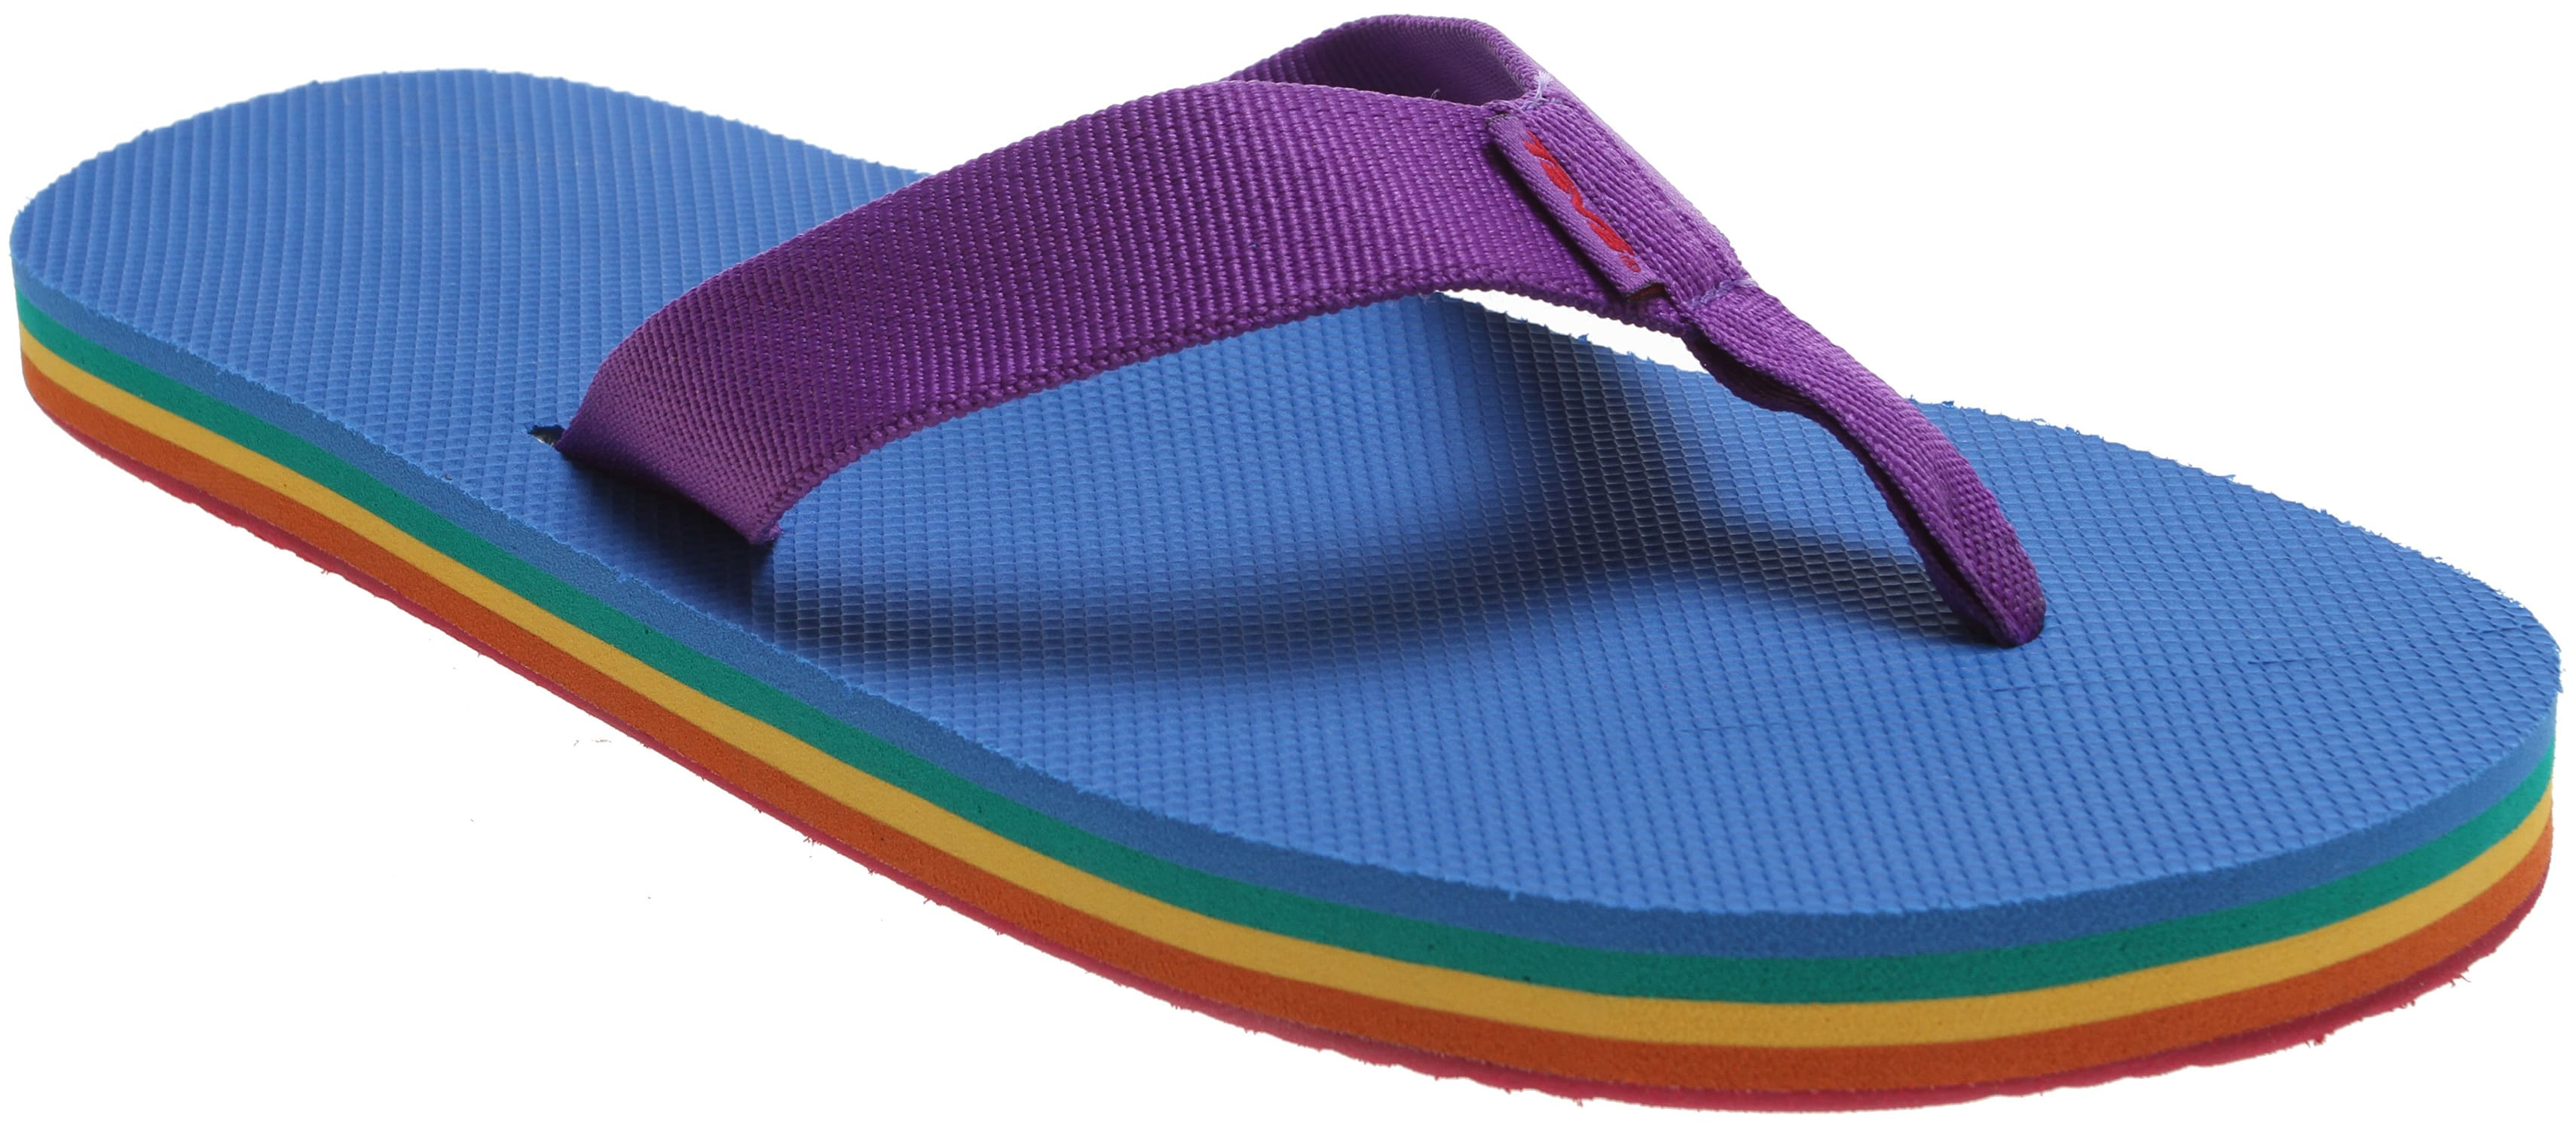 7a54be136e2b Teva Deckers Flip Sandals - thumbnail 2